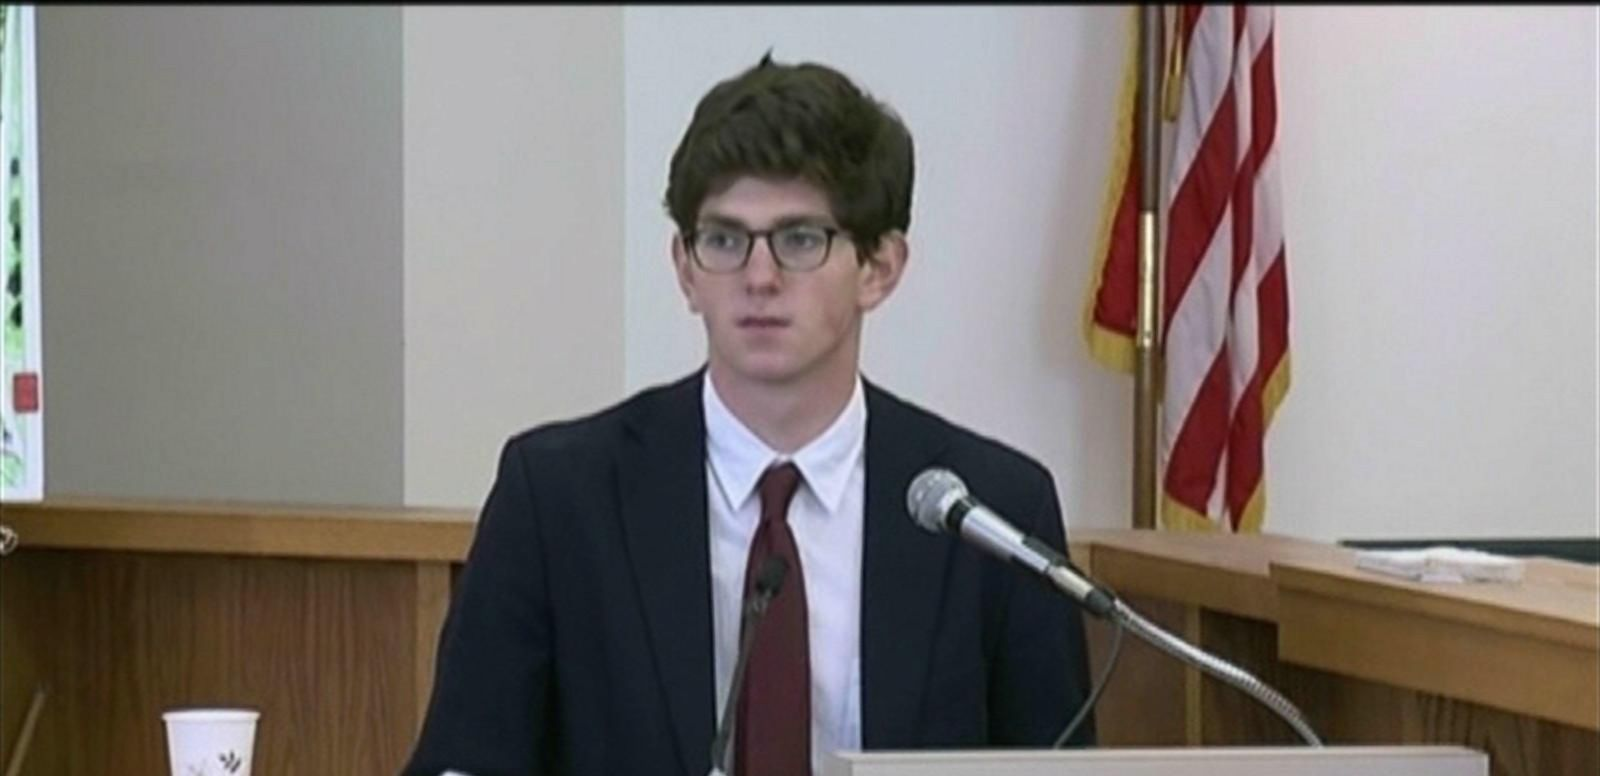 VIDEO: Jurors are now considering the case against Owen Labrie, 19, who is accused of raping a freshman at St. Paul's School in New Hampshire.